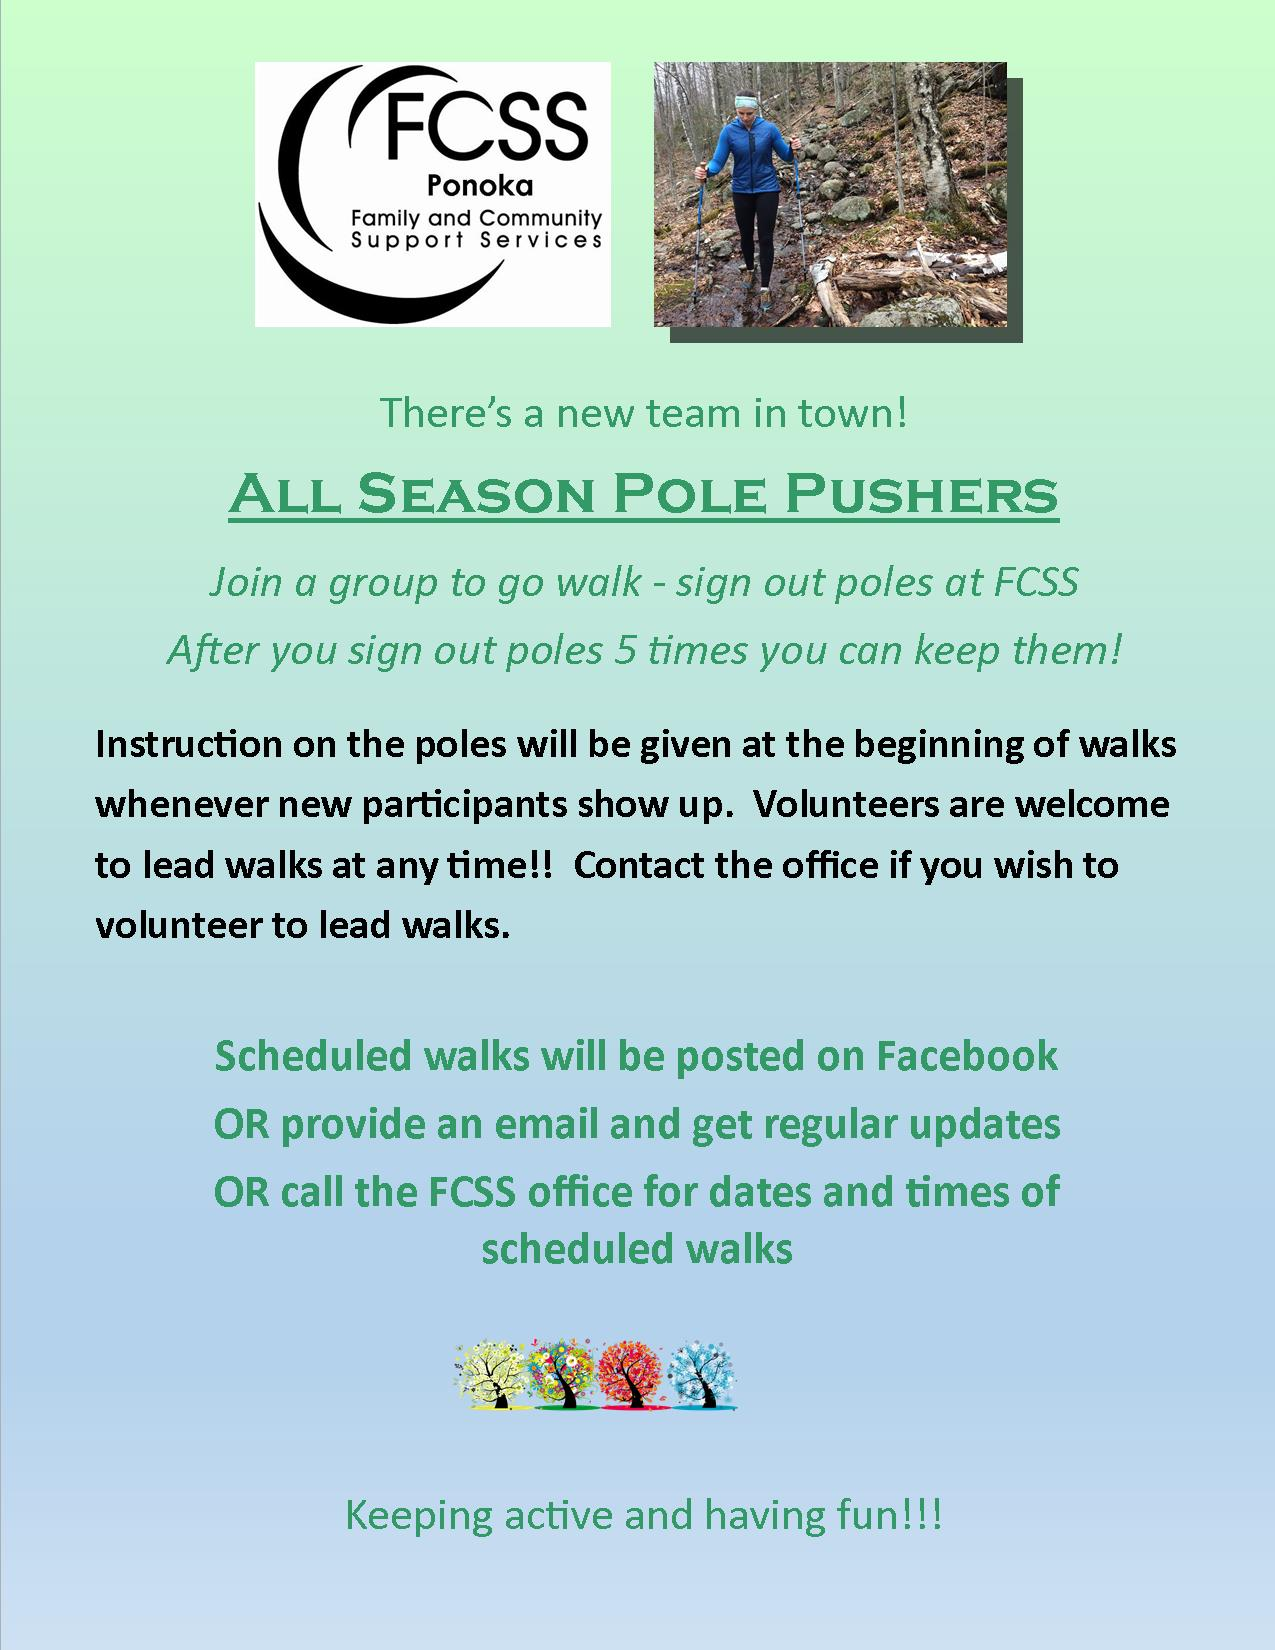 All Season Pole Pushers Walking Program. Call FCSS Office at 403-783-4462 for information.